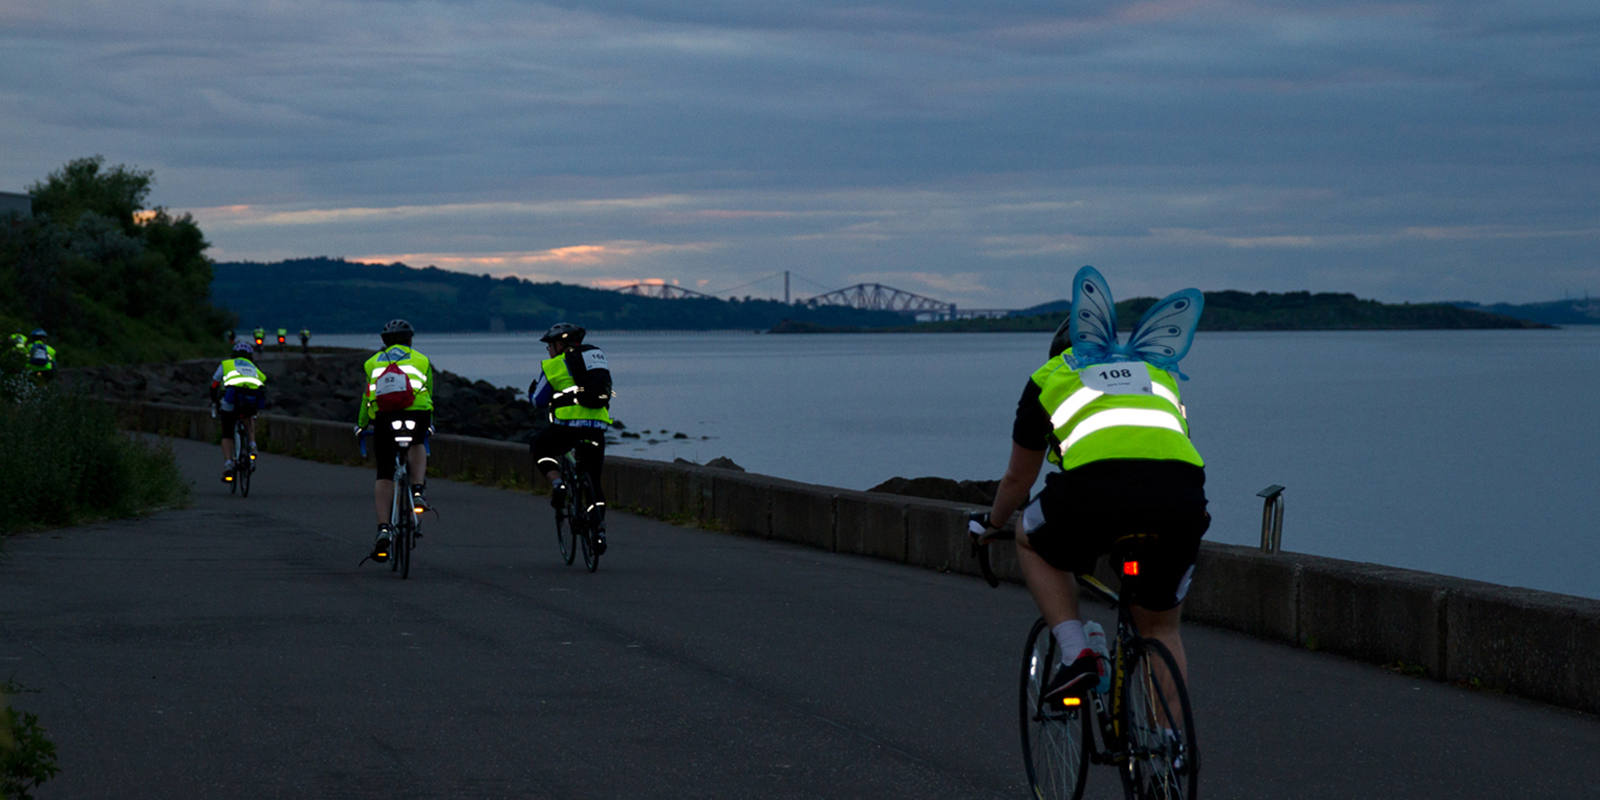 Edinburgh night ride participants